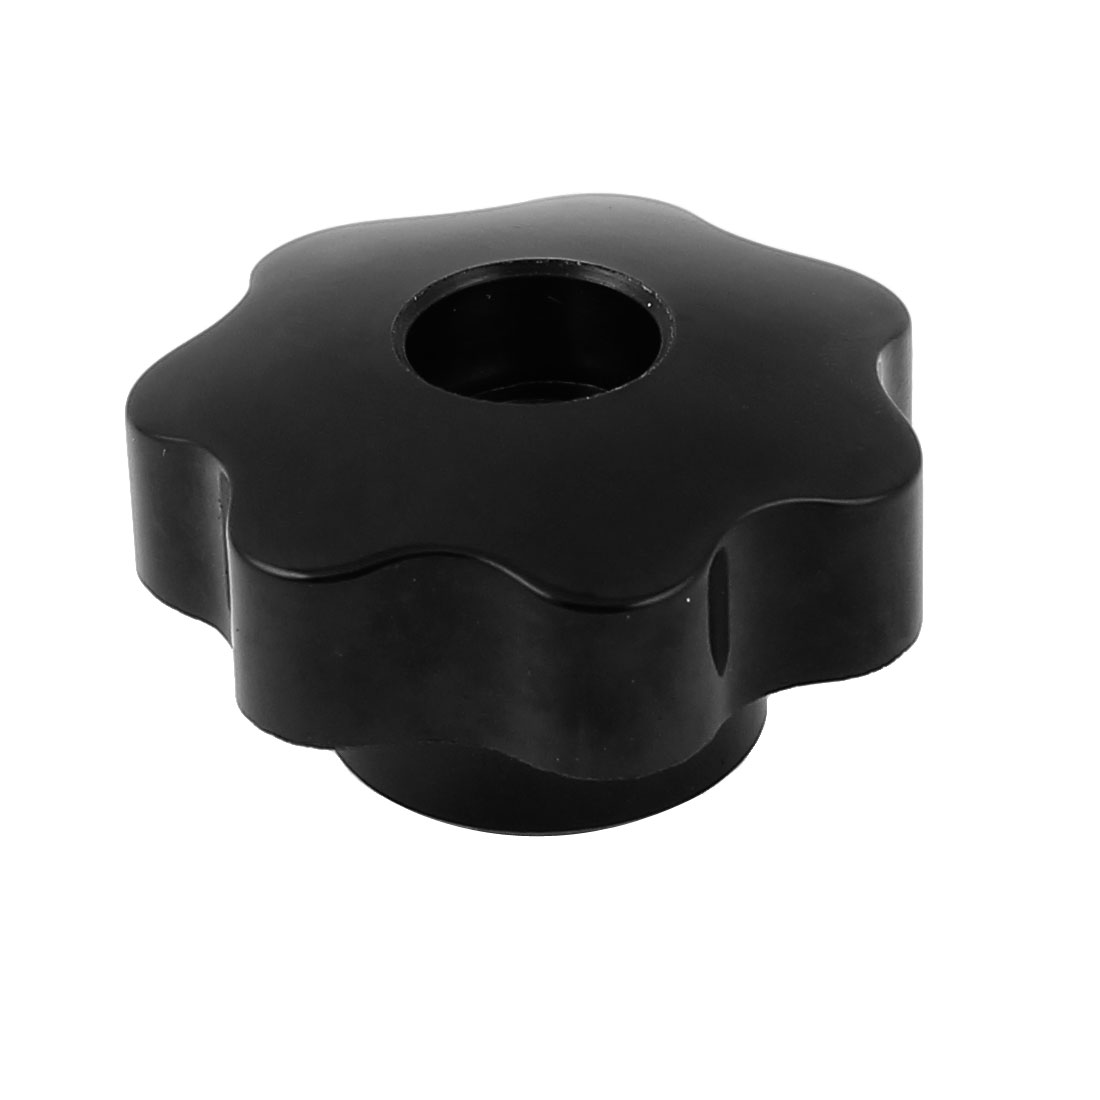 M10x50mm Plastic Screw On Type Grip Star Knurled Knob Replacement Black